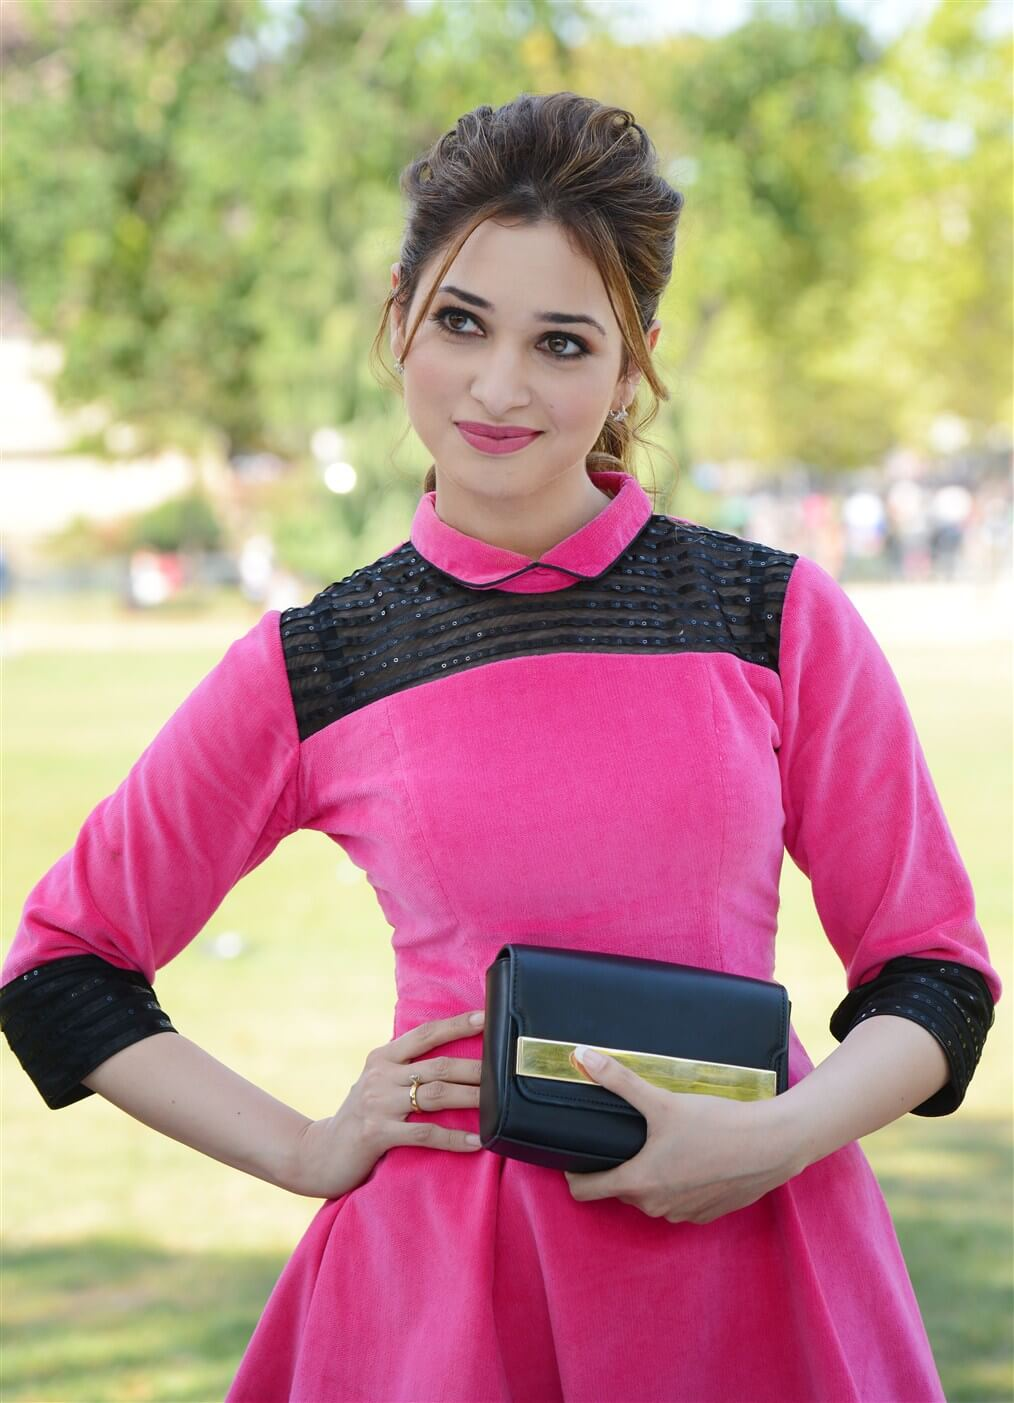 Tamannaah Bhatia Photos(images), Height, Biography, Movies, Date Of Birth, House, Details, Marriage, Boyfriend, Net Worth, Education, Instagram, Facebook, Twitter, Wiki, Imdb, Youtube (47)